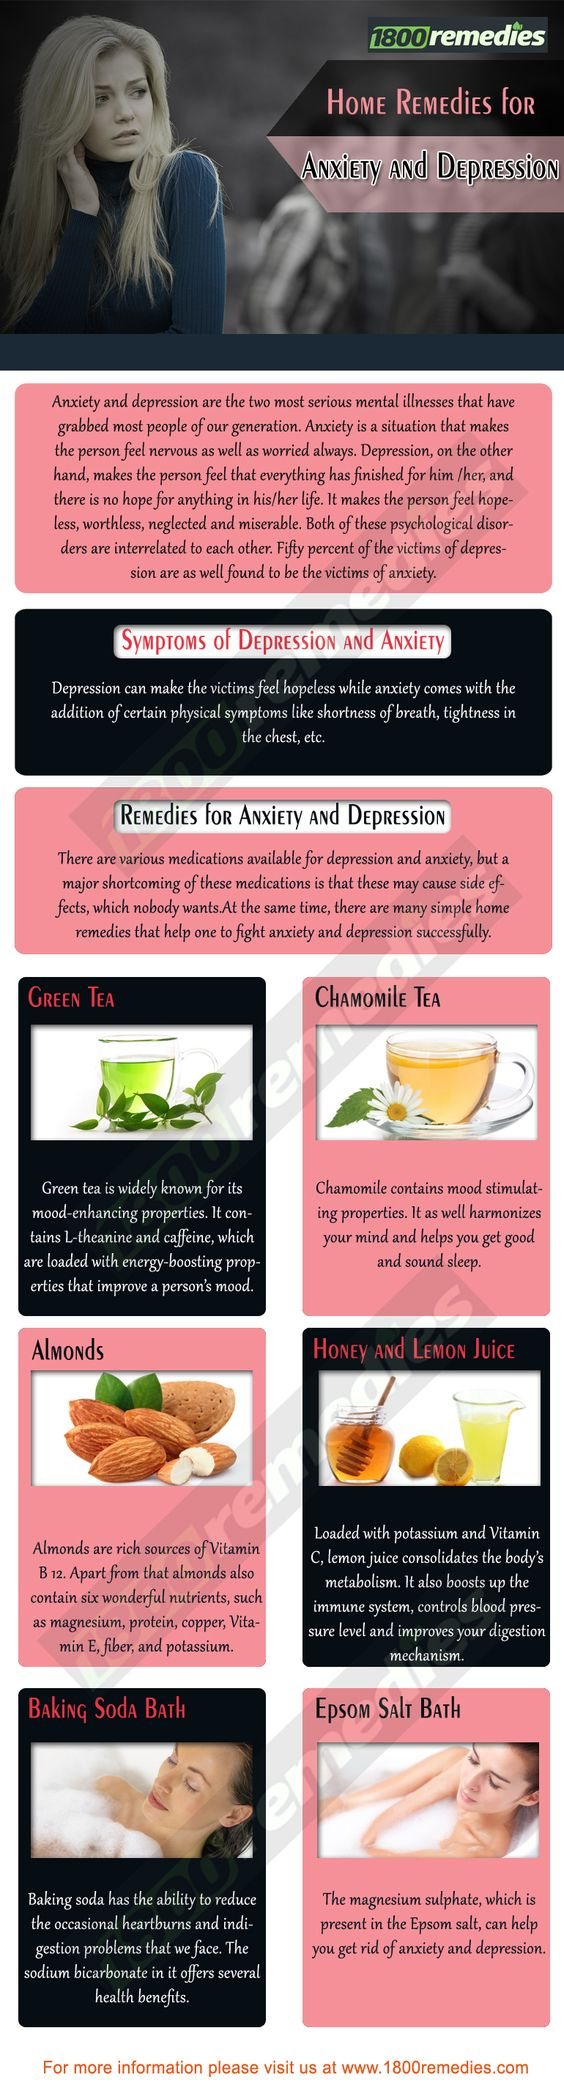 There are many simple home remedies that help one to fight anxiety and depression successfully. Let's have a look at some of the home remedies for anxiety and depression: